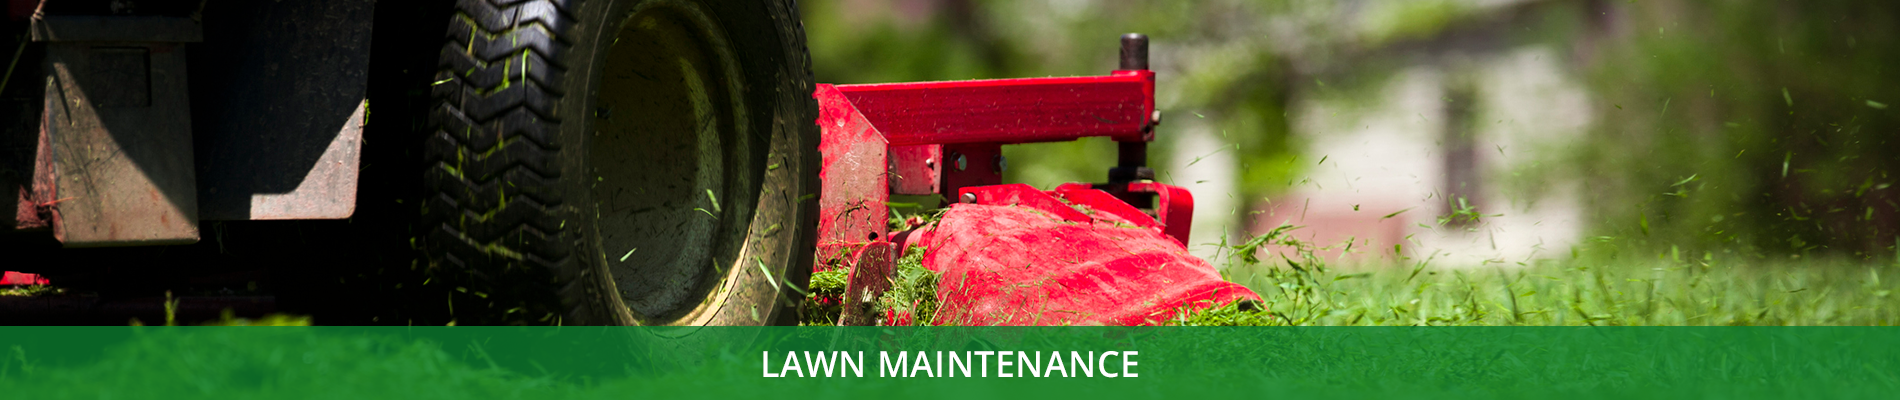 Lawn-Maintenance-Services-MN-Banner.png